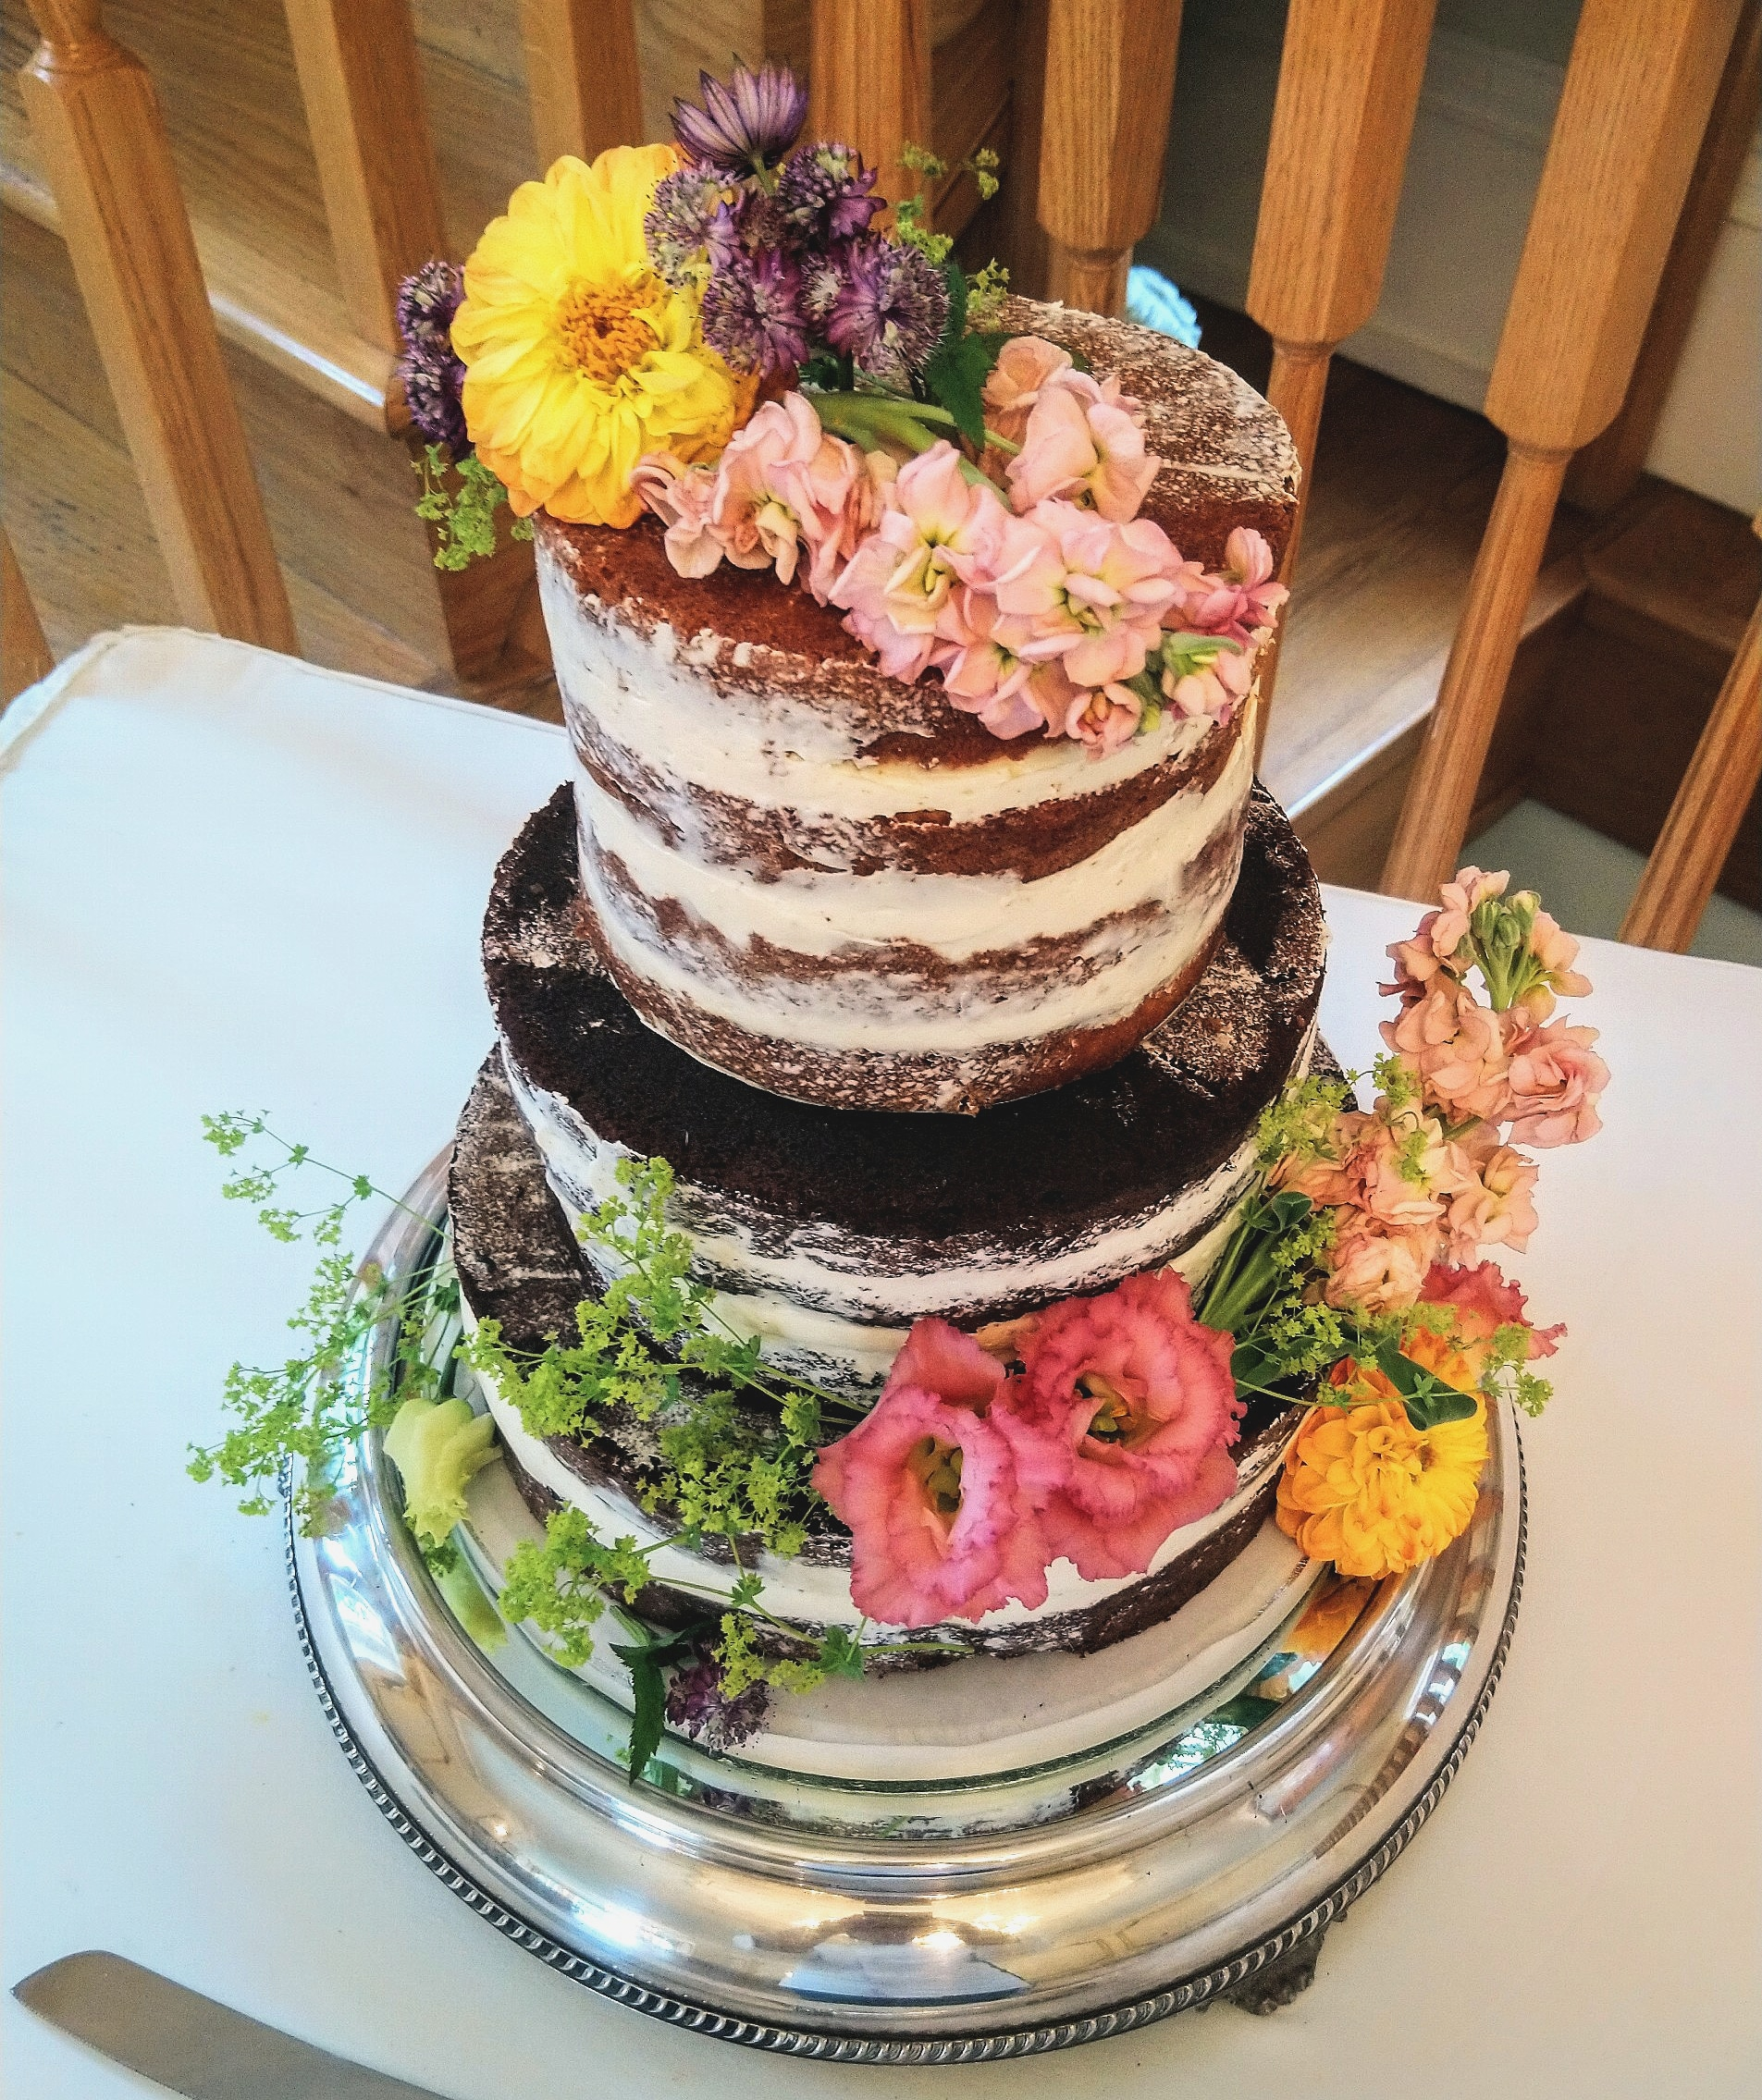 Half Dressed Rustic Wedding Cake with Flowers